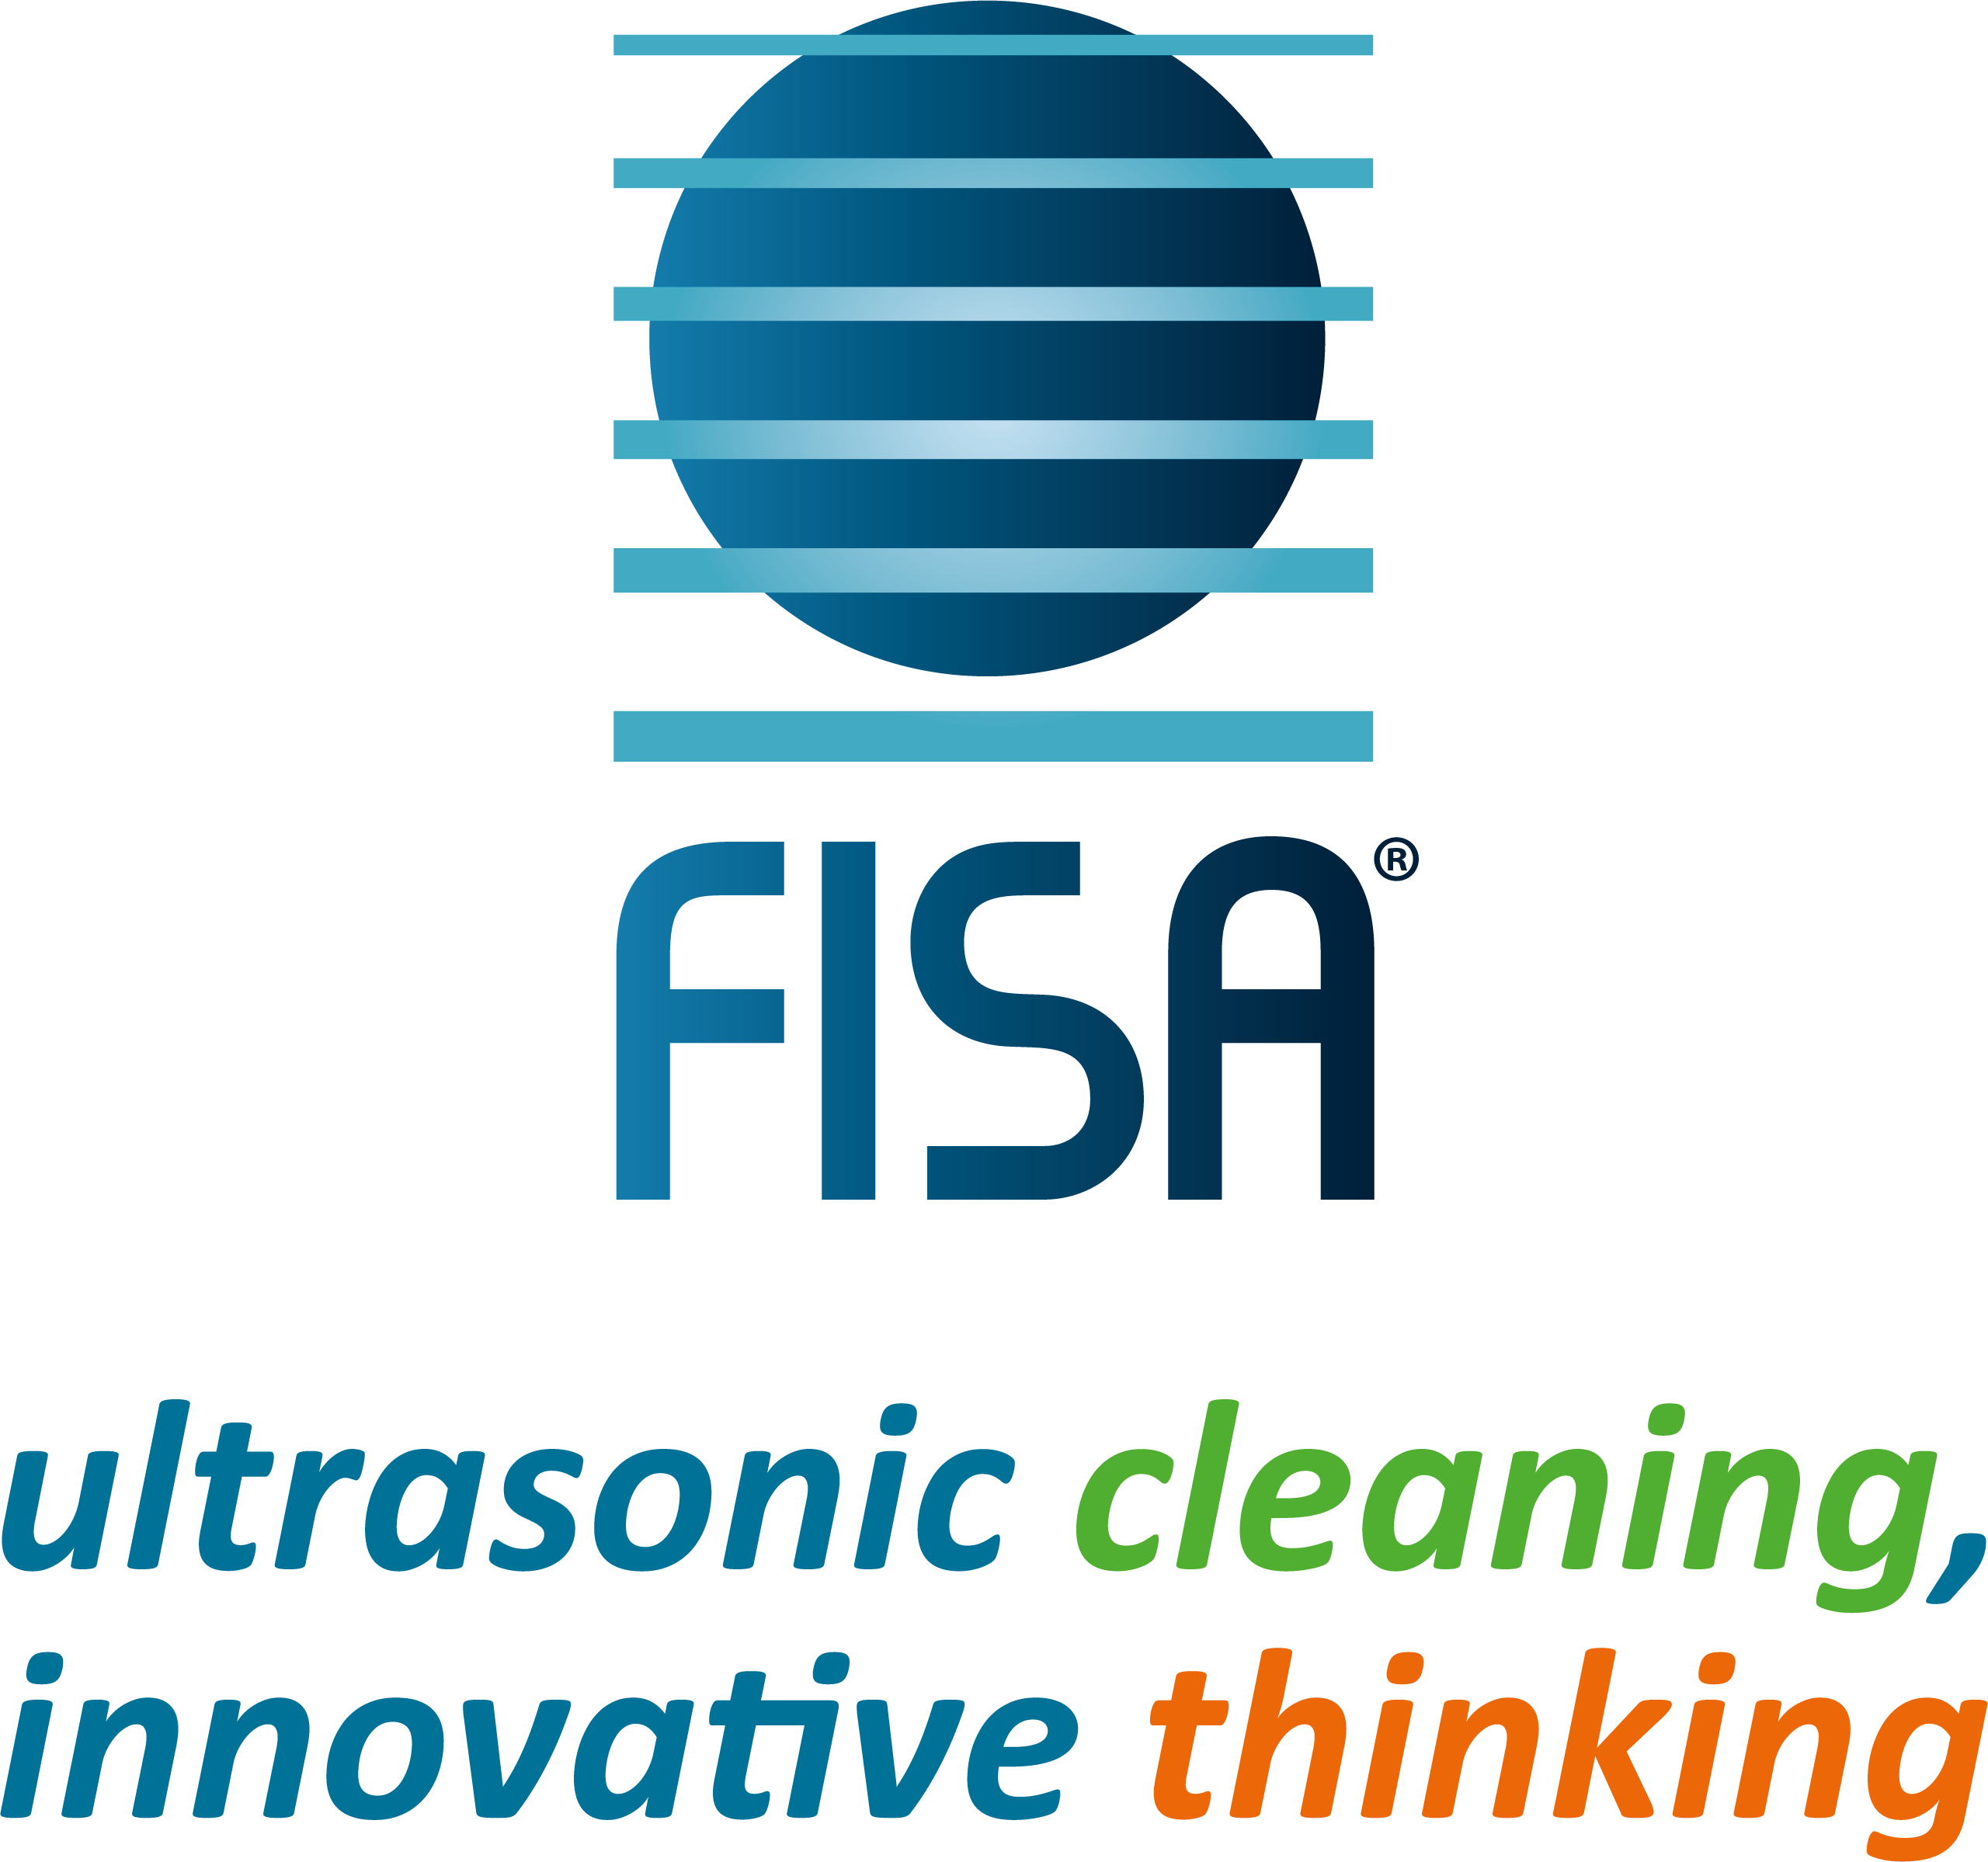 FISA - NETTOYAGE ULTRASONS - MACHINES & PROCESS Logo